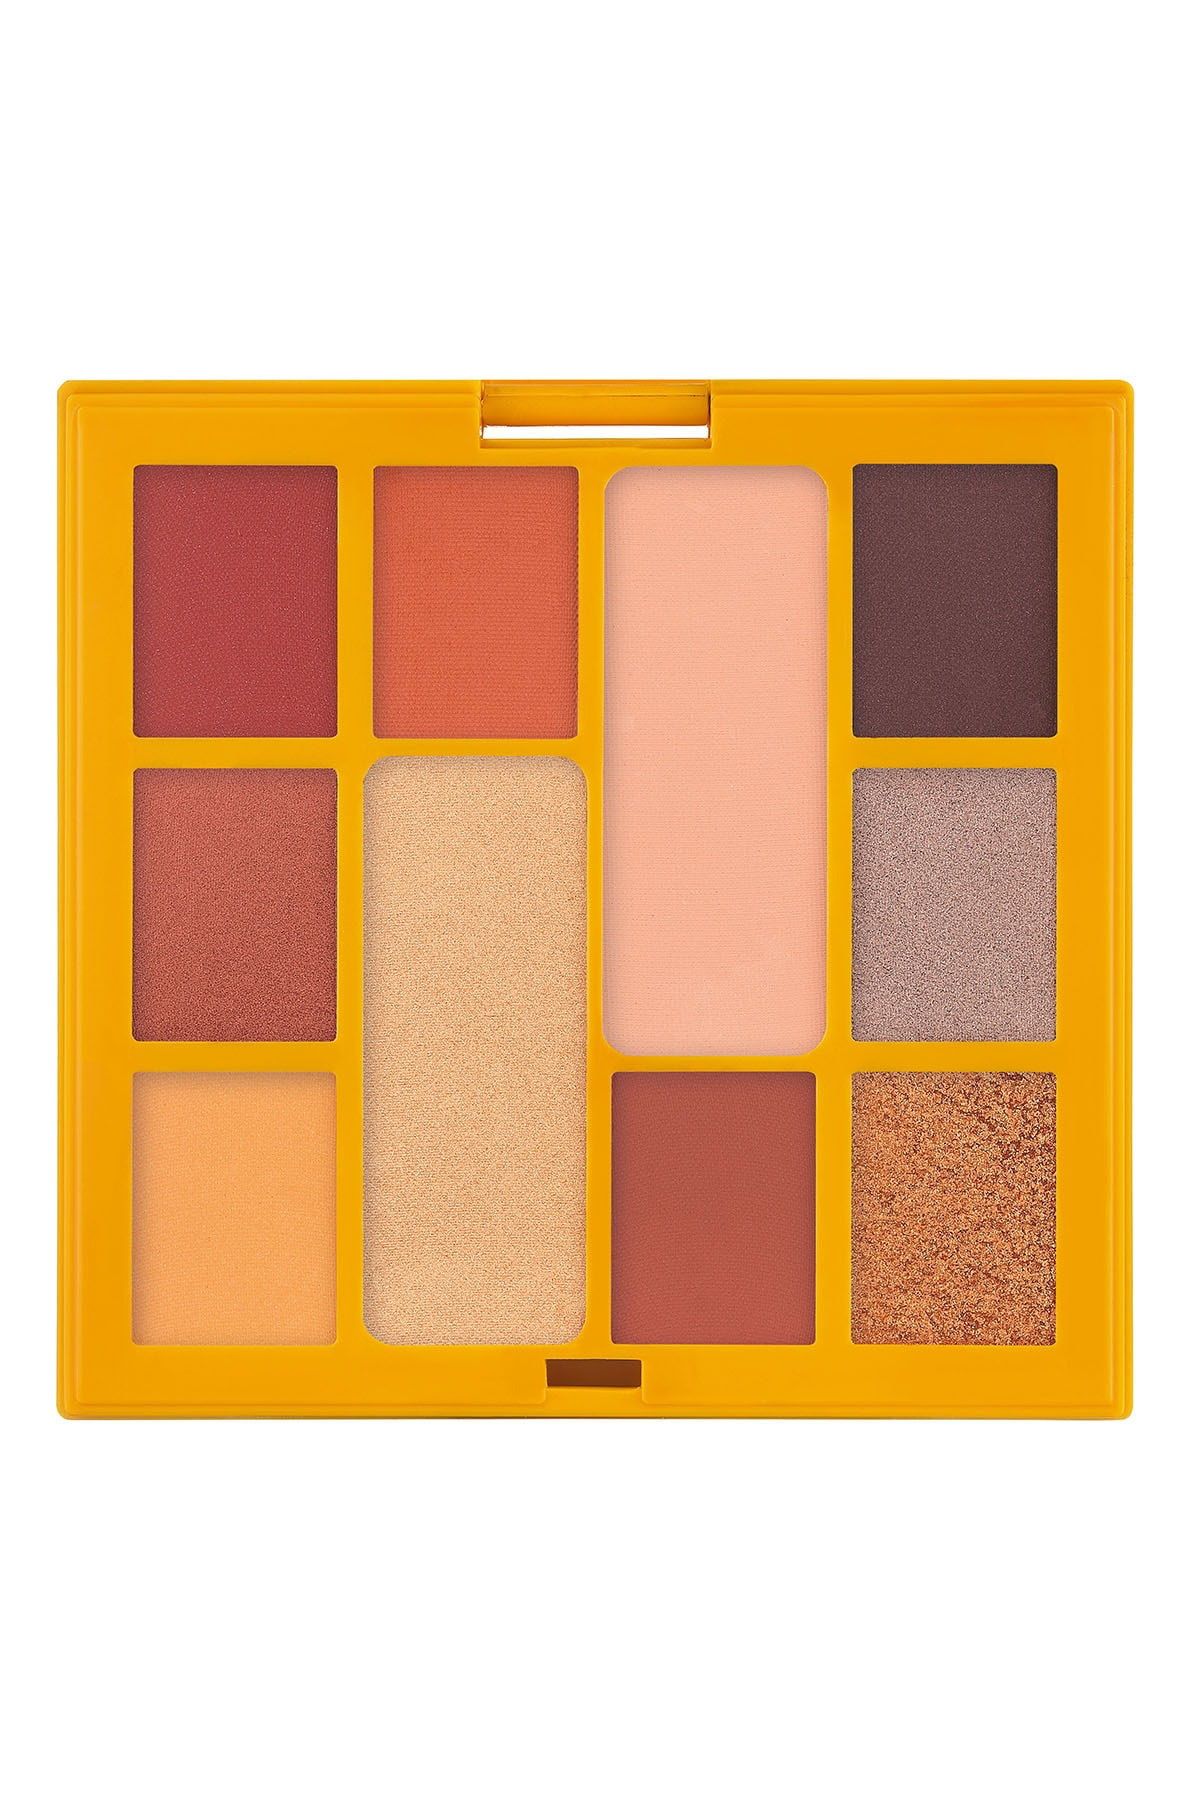 Pastel Show Your Style Eyeshadow Set Bohemian No 461 - Far Paleti 2